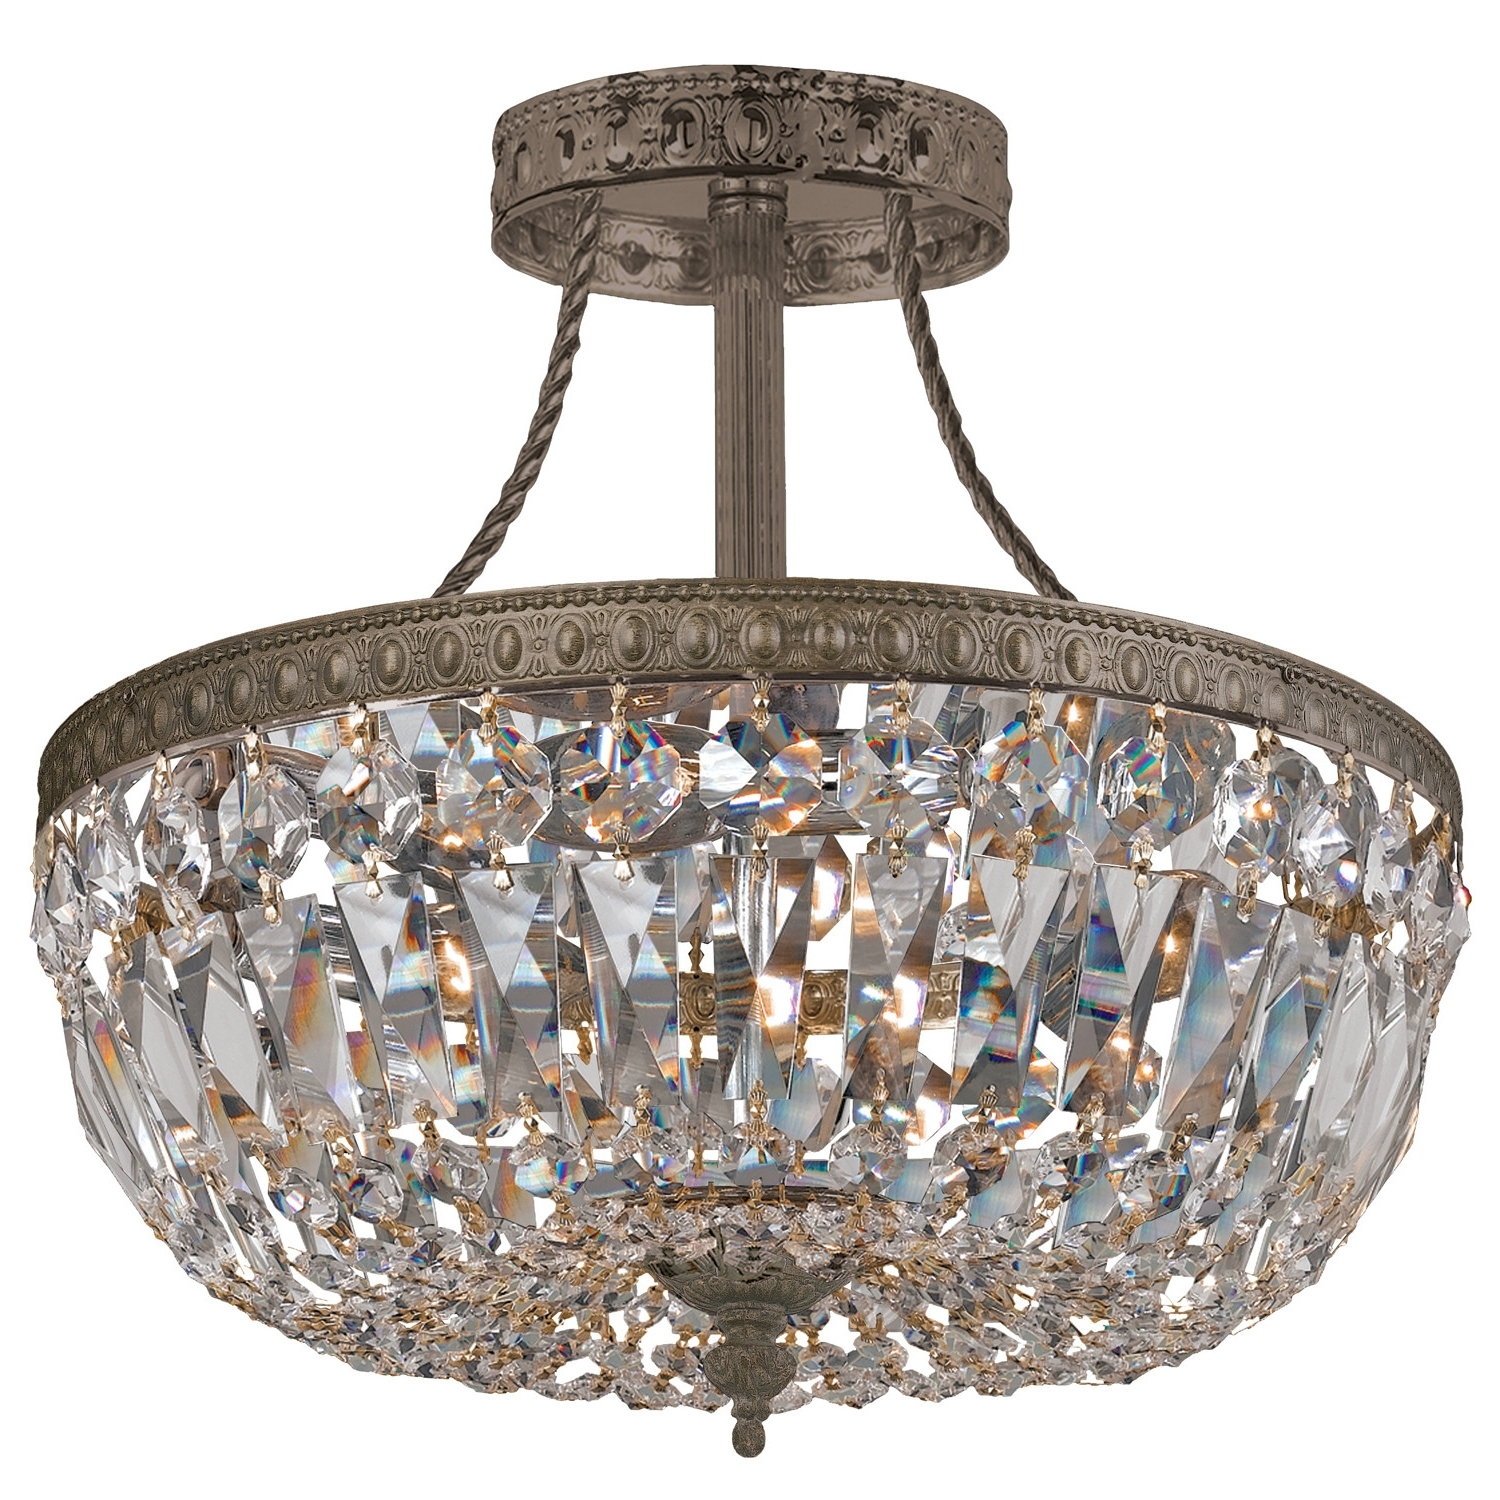 Wall Mount Crystal Chandeliers Within Most Current Crystal Flush Mount Chandelier – Espan (View 5 of 20)